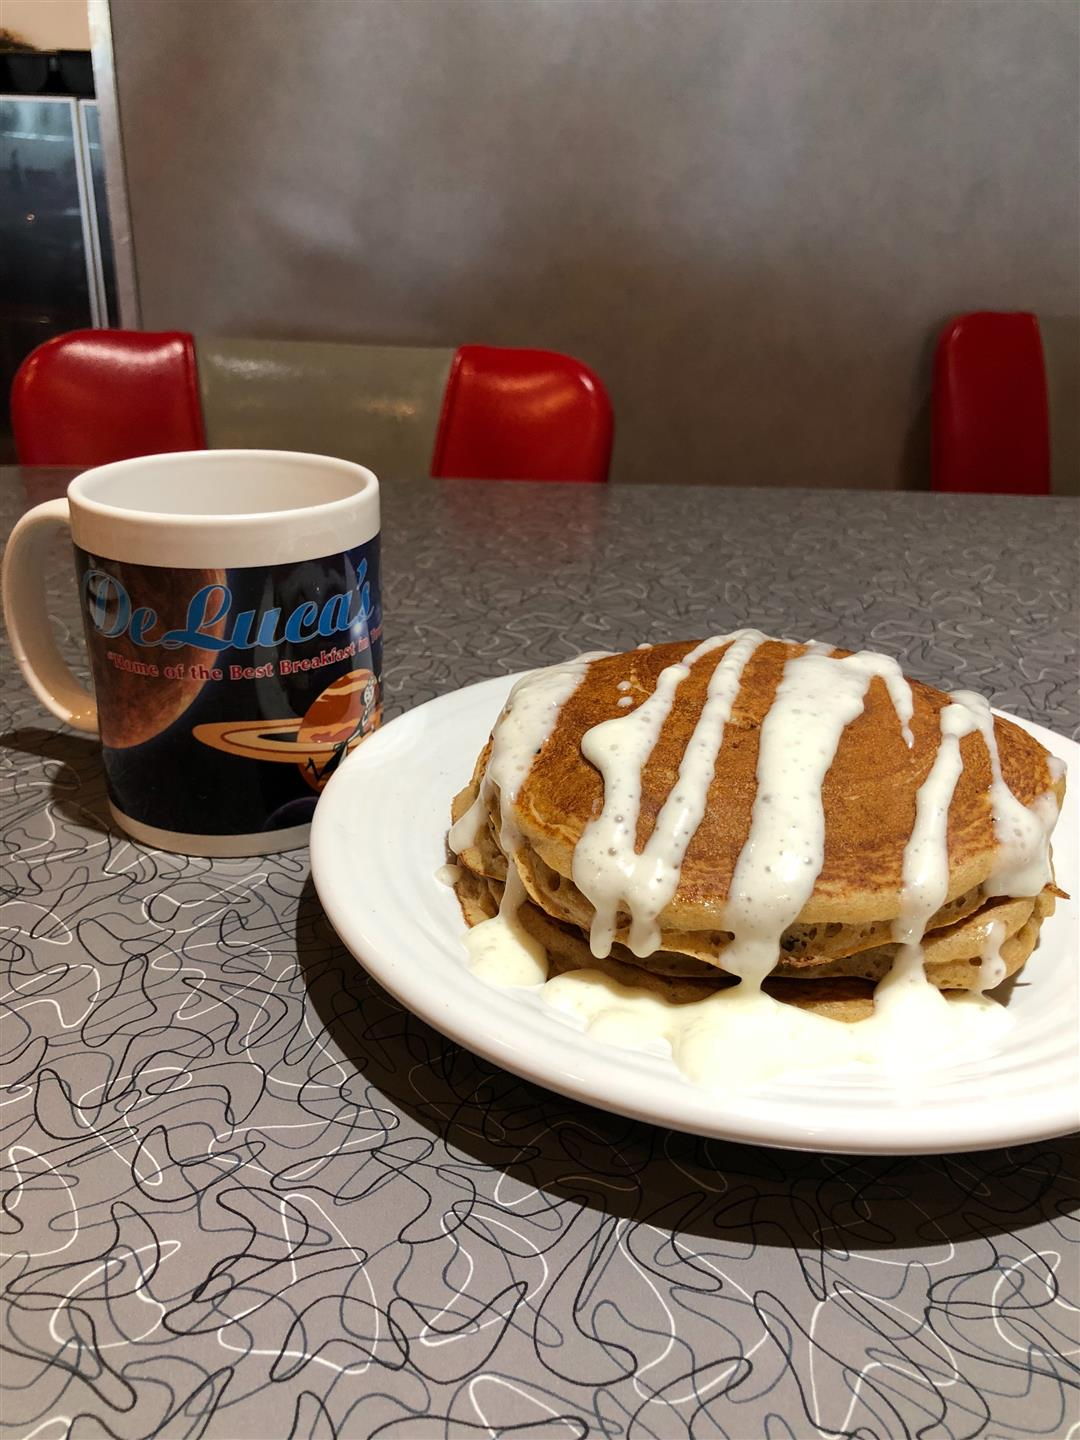 two buttermilk pancakes on a plate drizzled in gravy with a coffee mug next to it